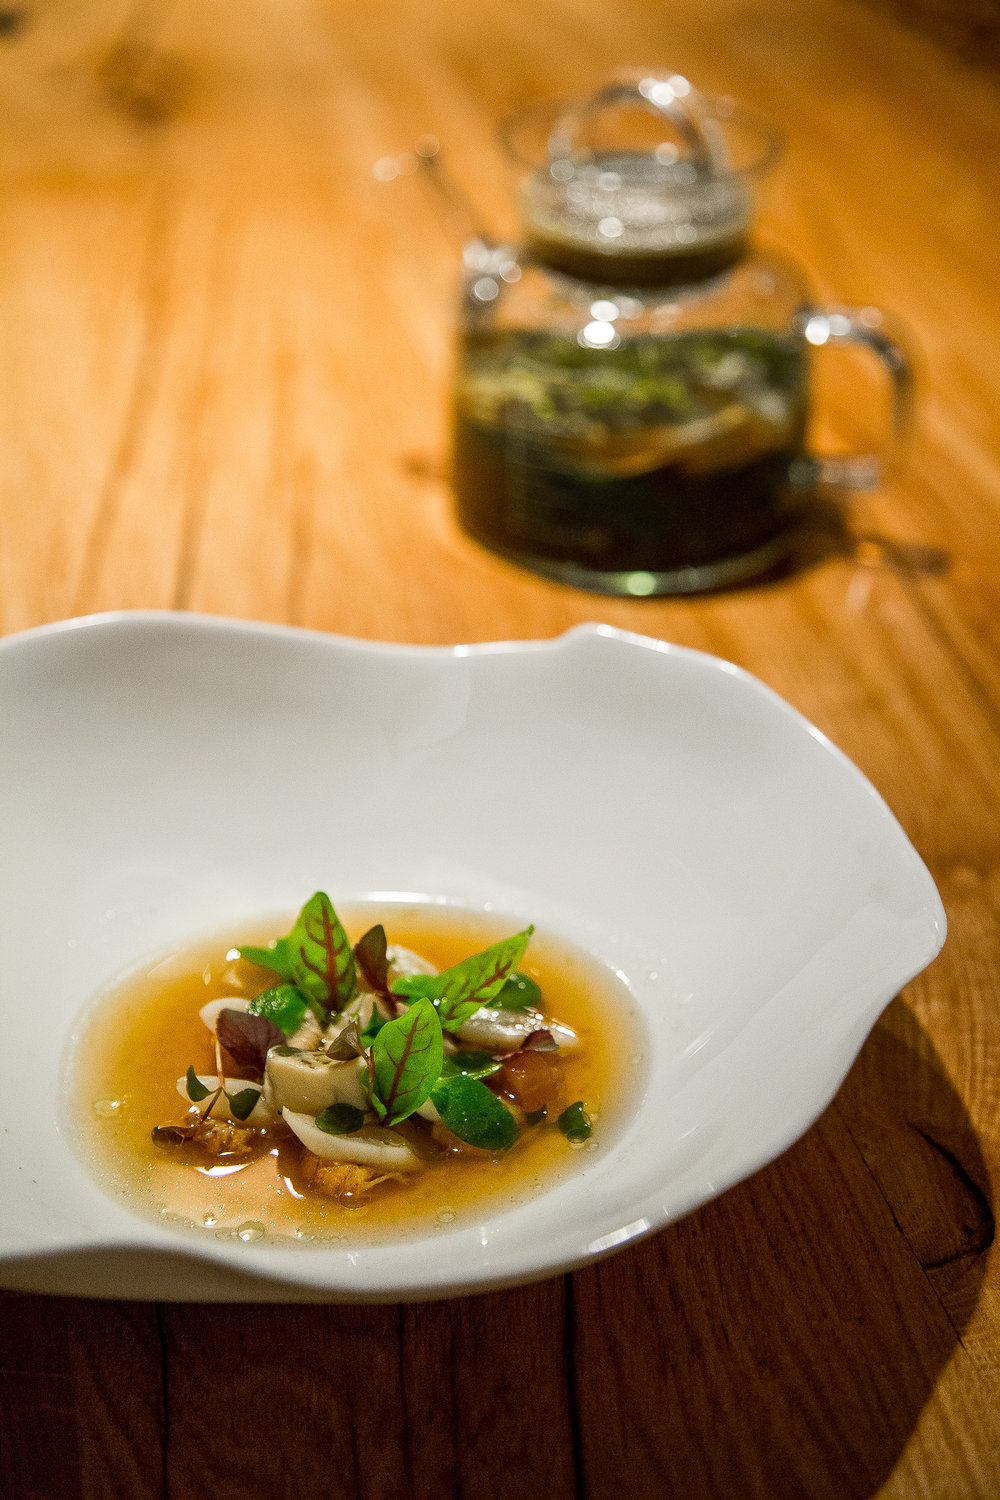 Gillardeau Oyster, Grey Prawns, Pineapple and an Oyster Shell, Miso Consommé